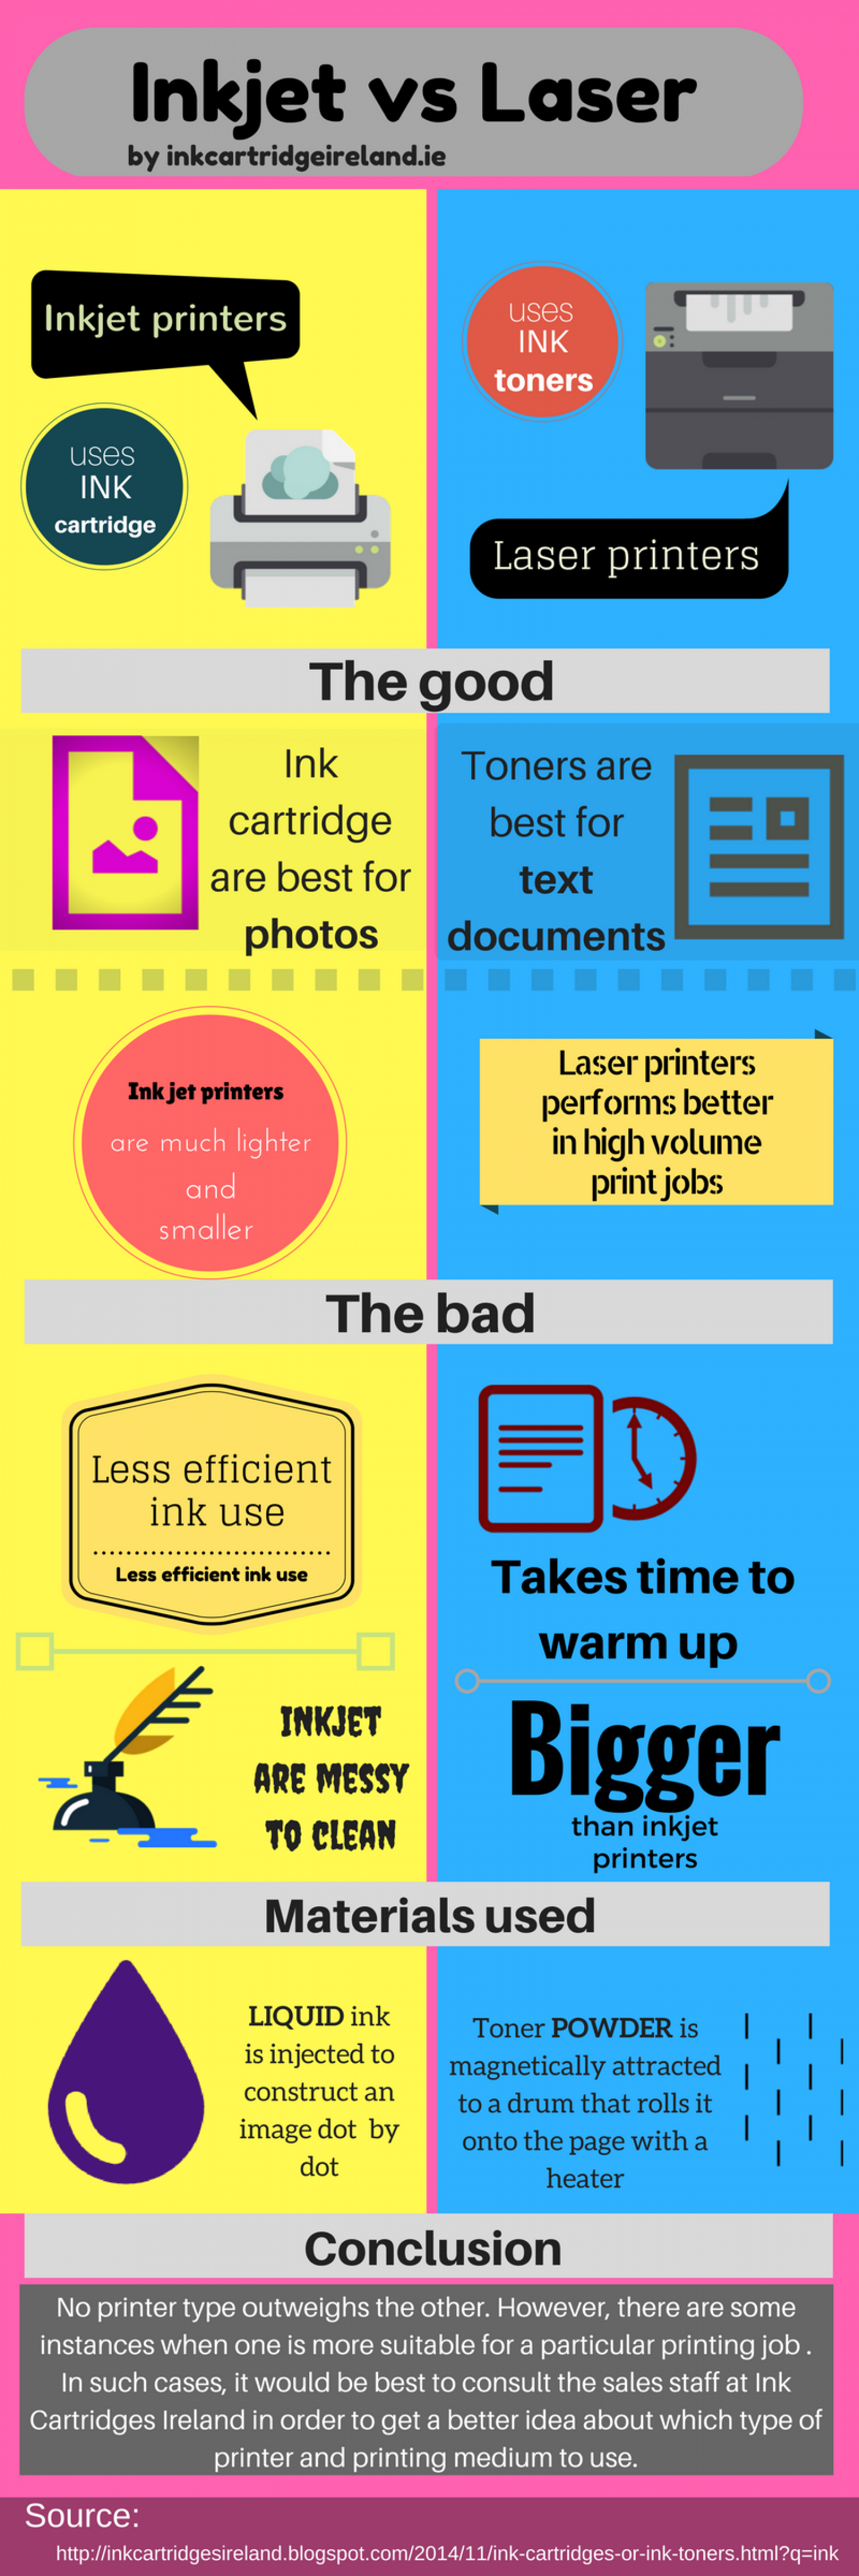 Ink Cartridges or Ink Toners? Infographic